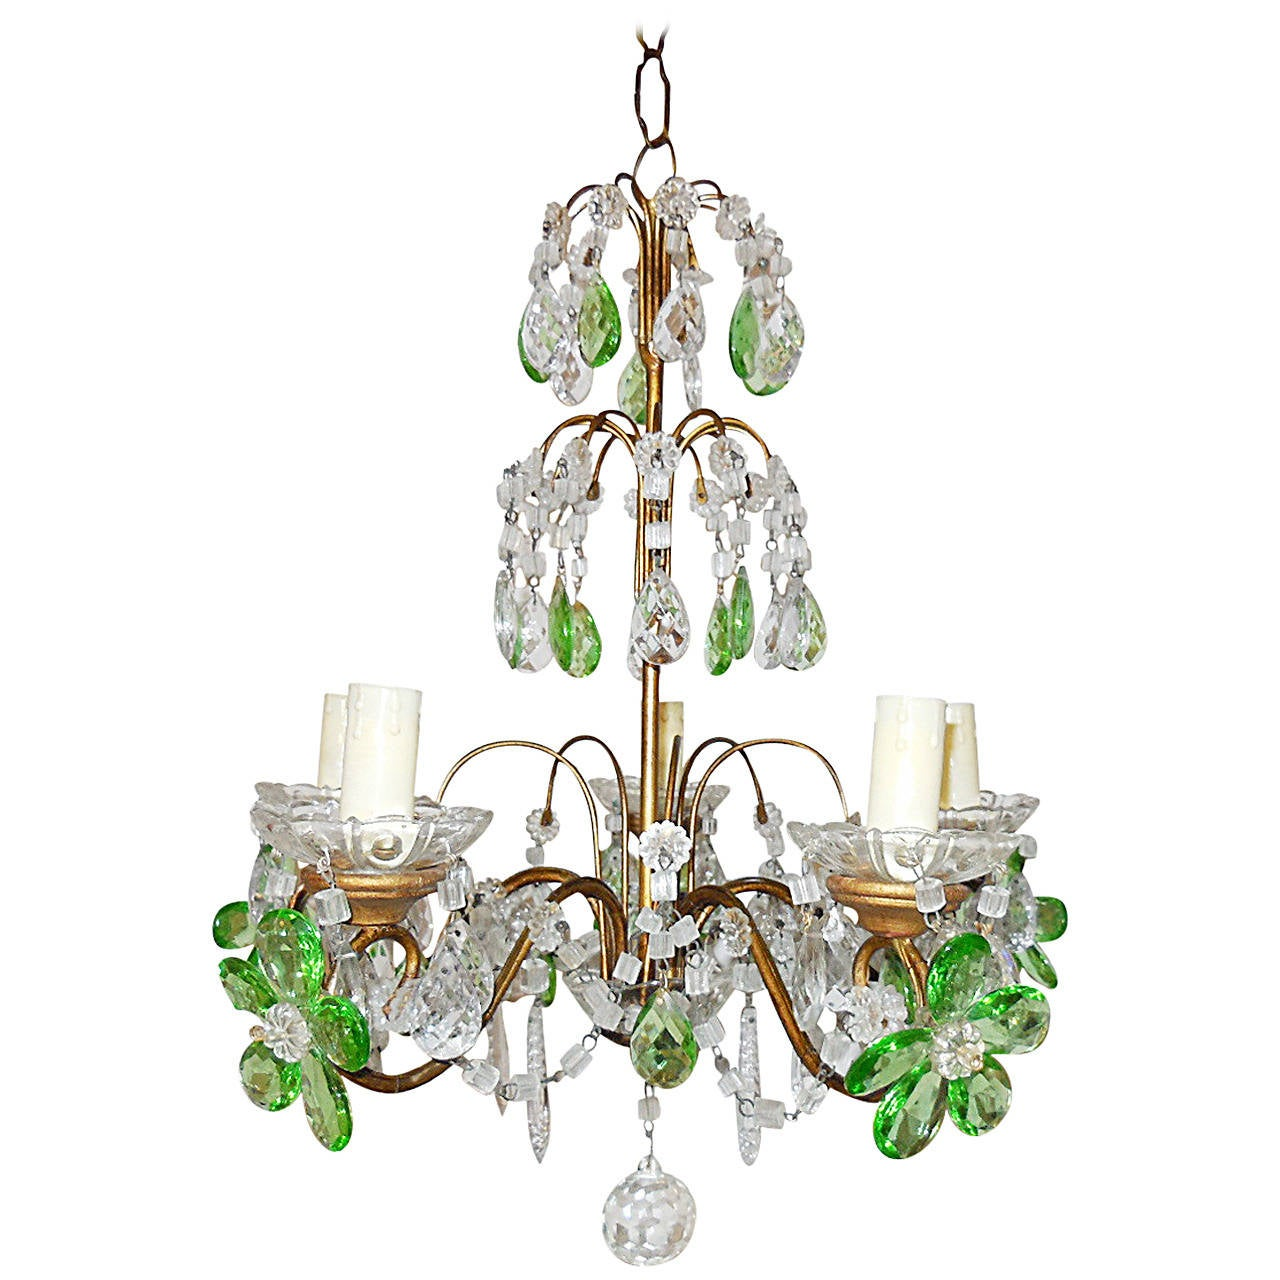 French green and clear crystal prisms flowers chandelier circa 1920 french green and clear crystal prisms flowers chandelier circa 1920 for sale mozeypictures Choice Image